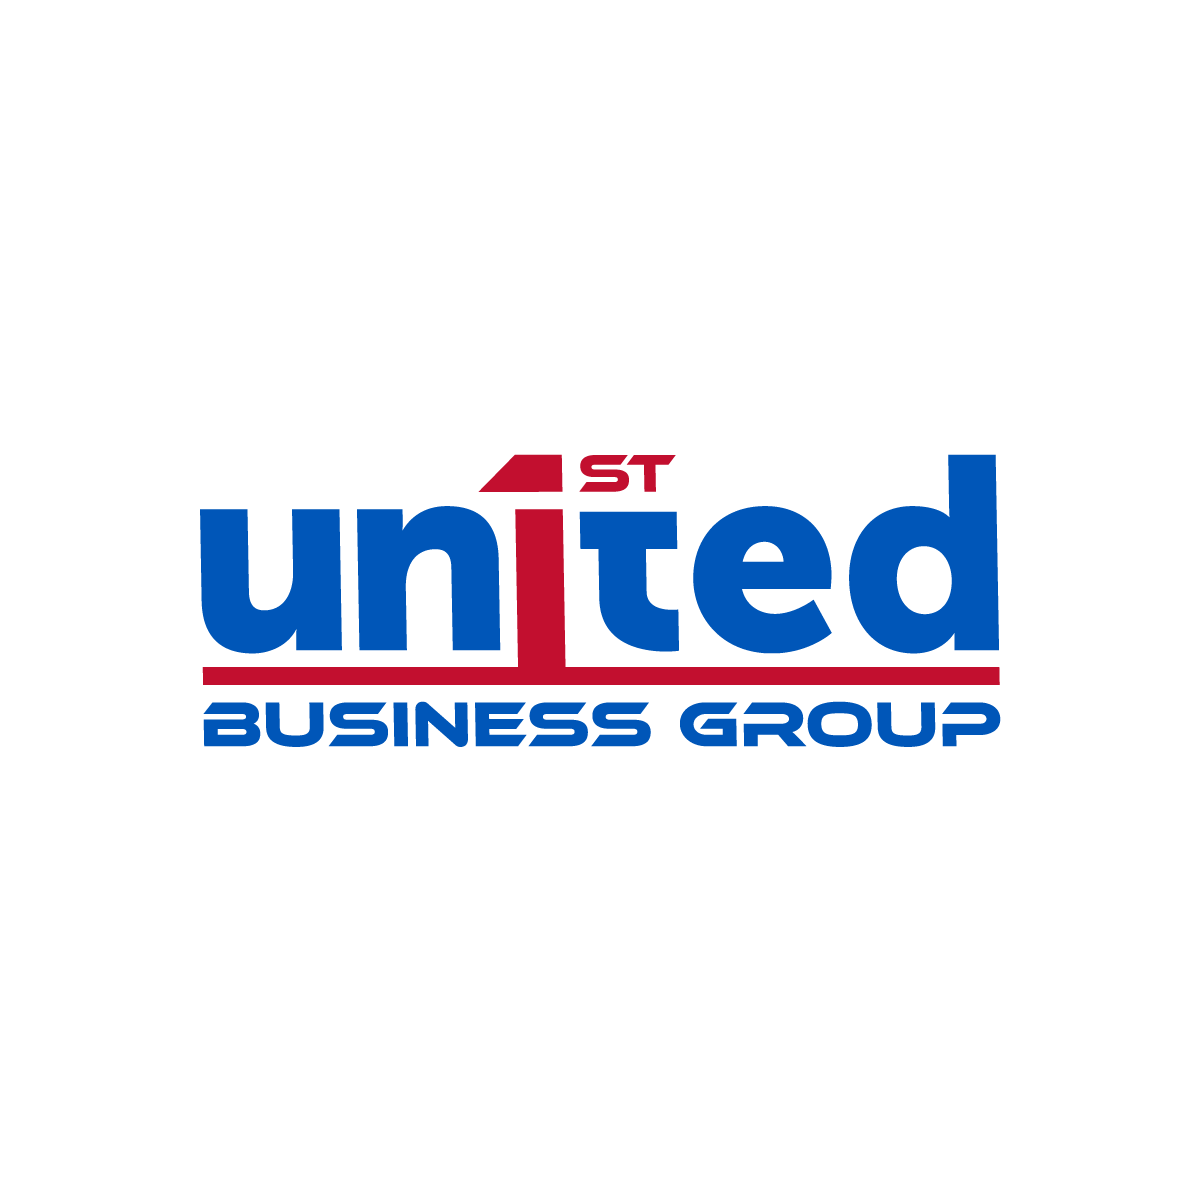 1st United Business Group